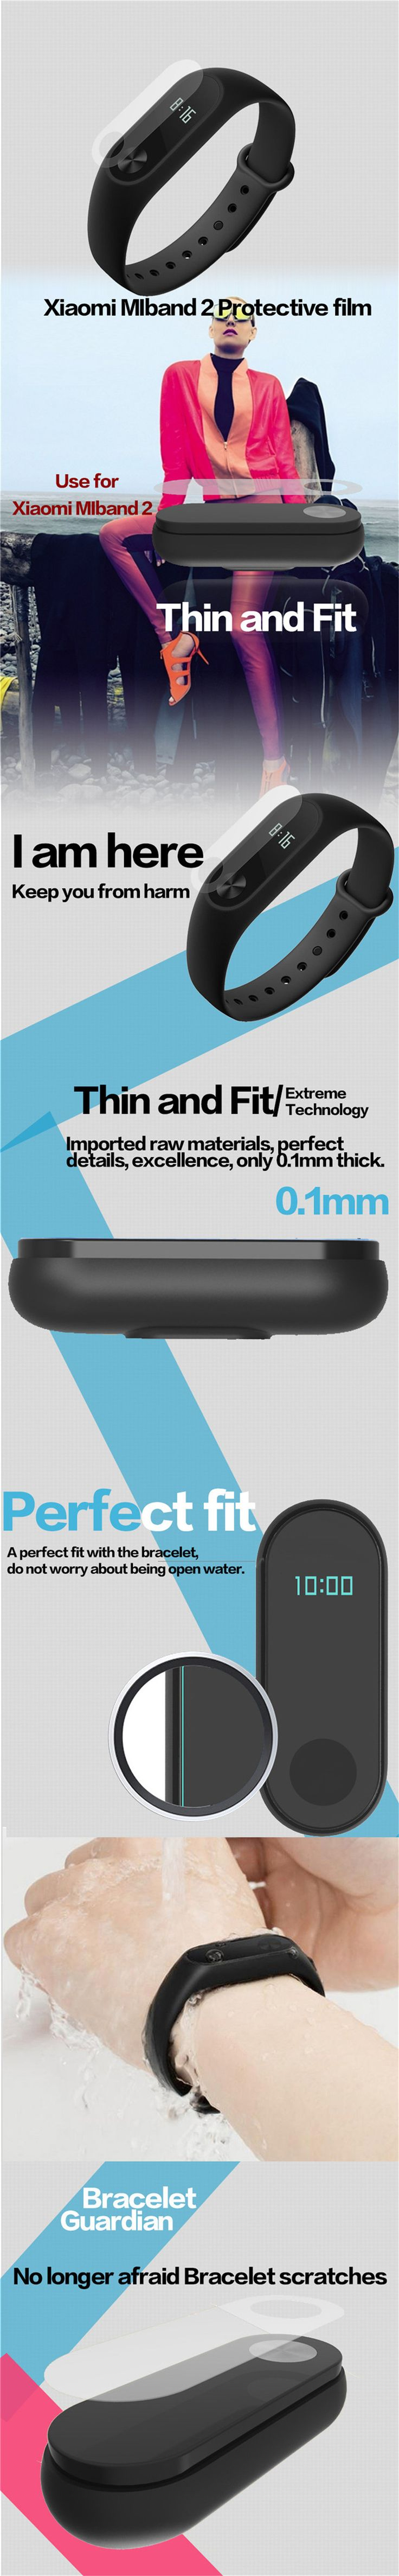 0.1mm HD Protective Film for Xiaomi Miband 2 - Transparent (2PCS) - Free Shipping - DealExtreme